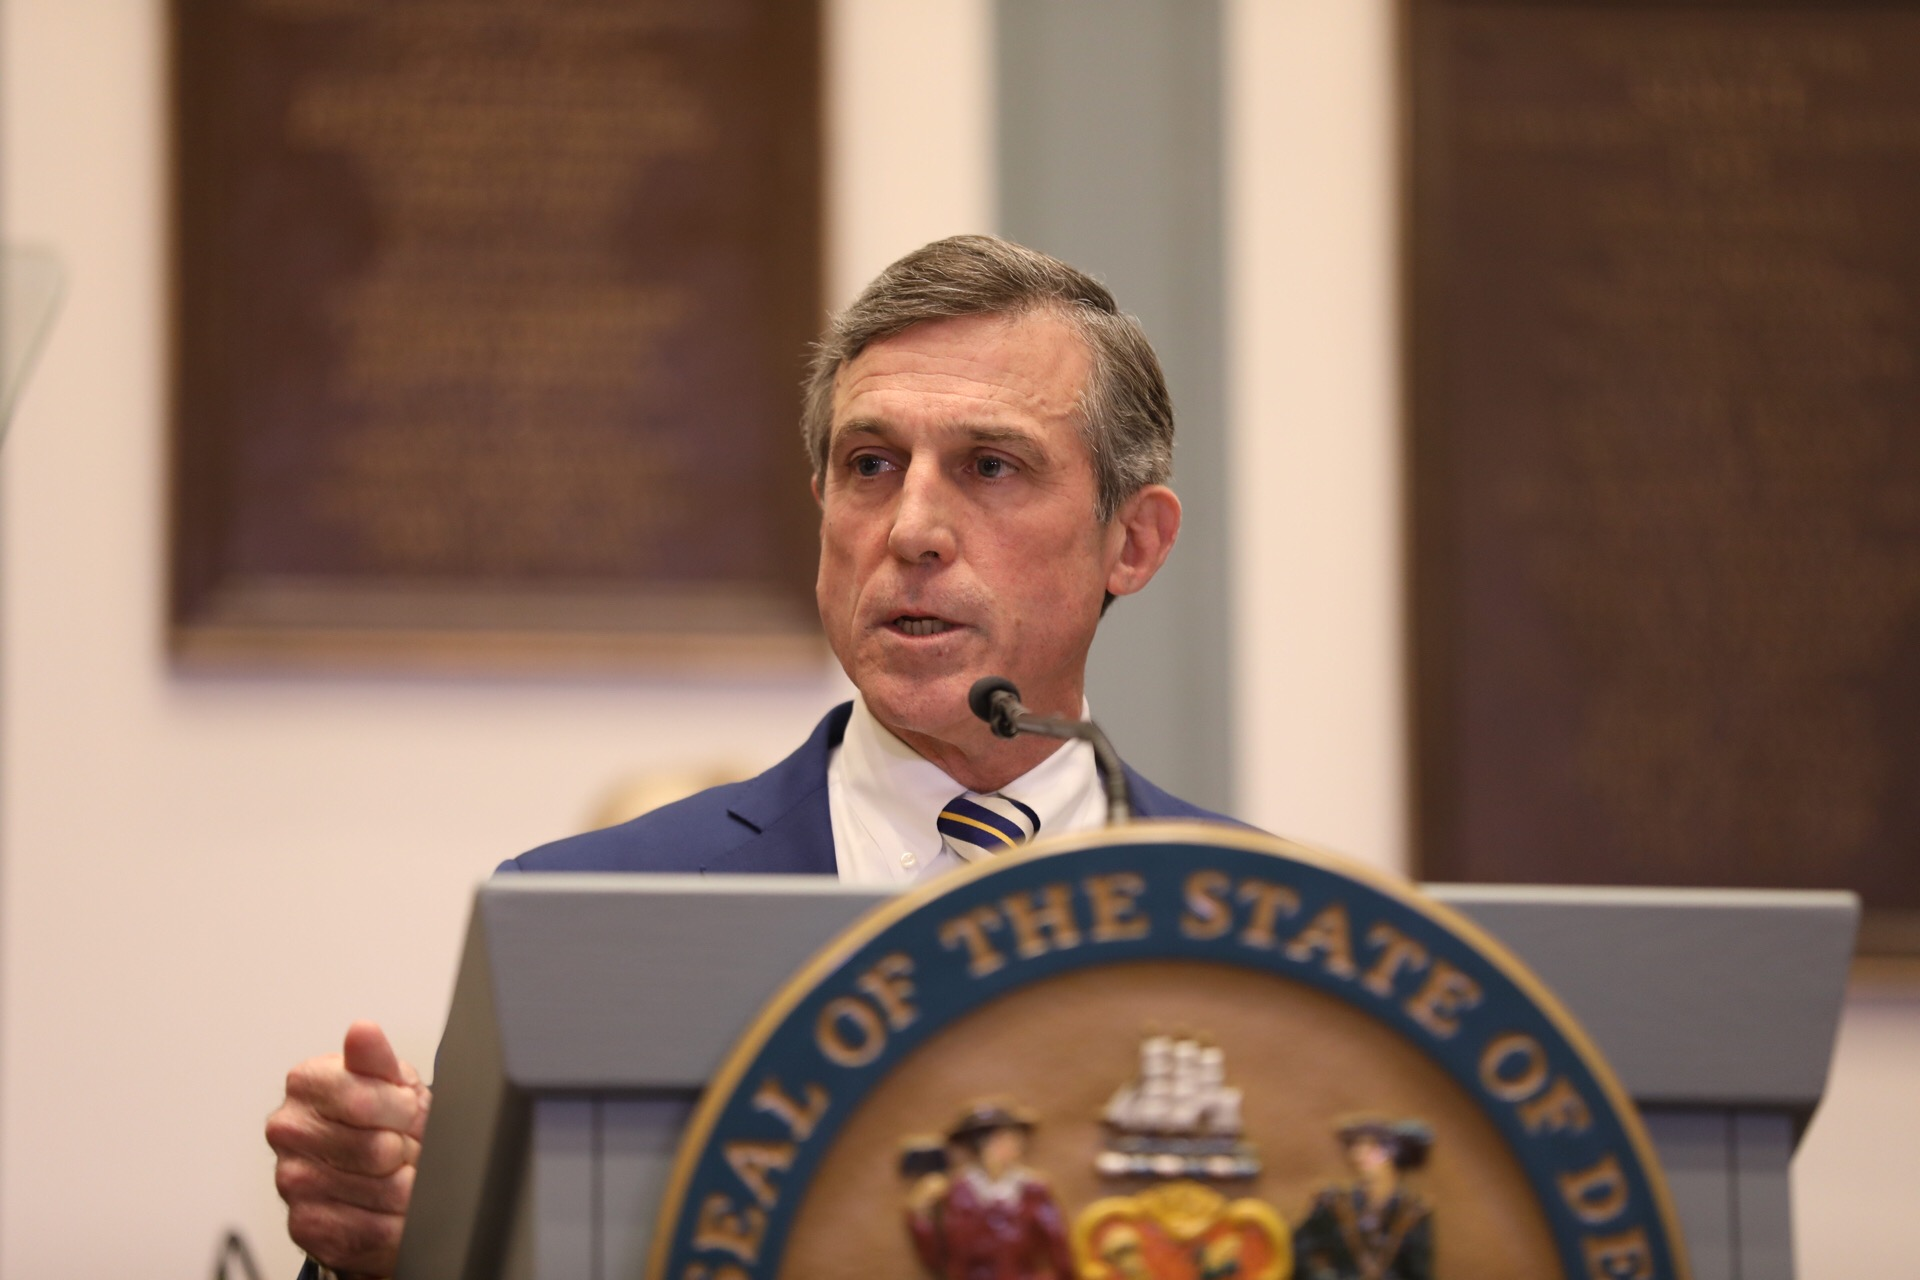 Governor Carney delivers his 2019 State of the State Address